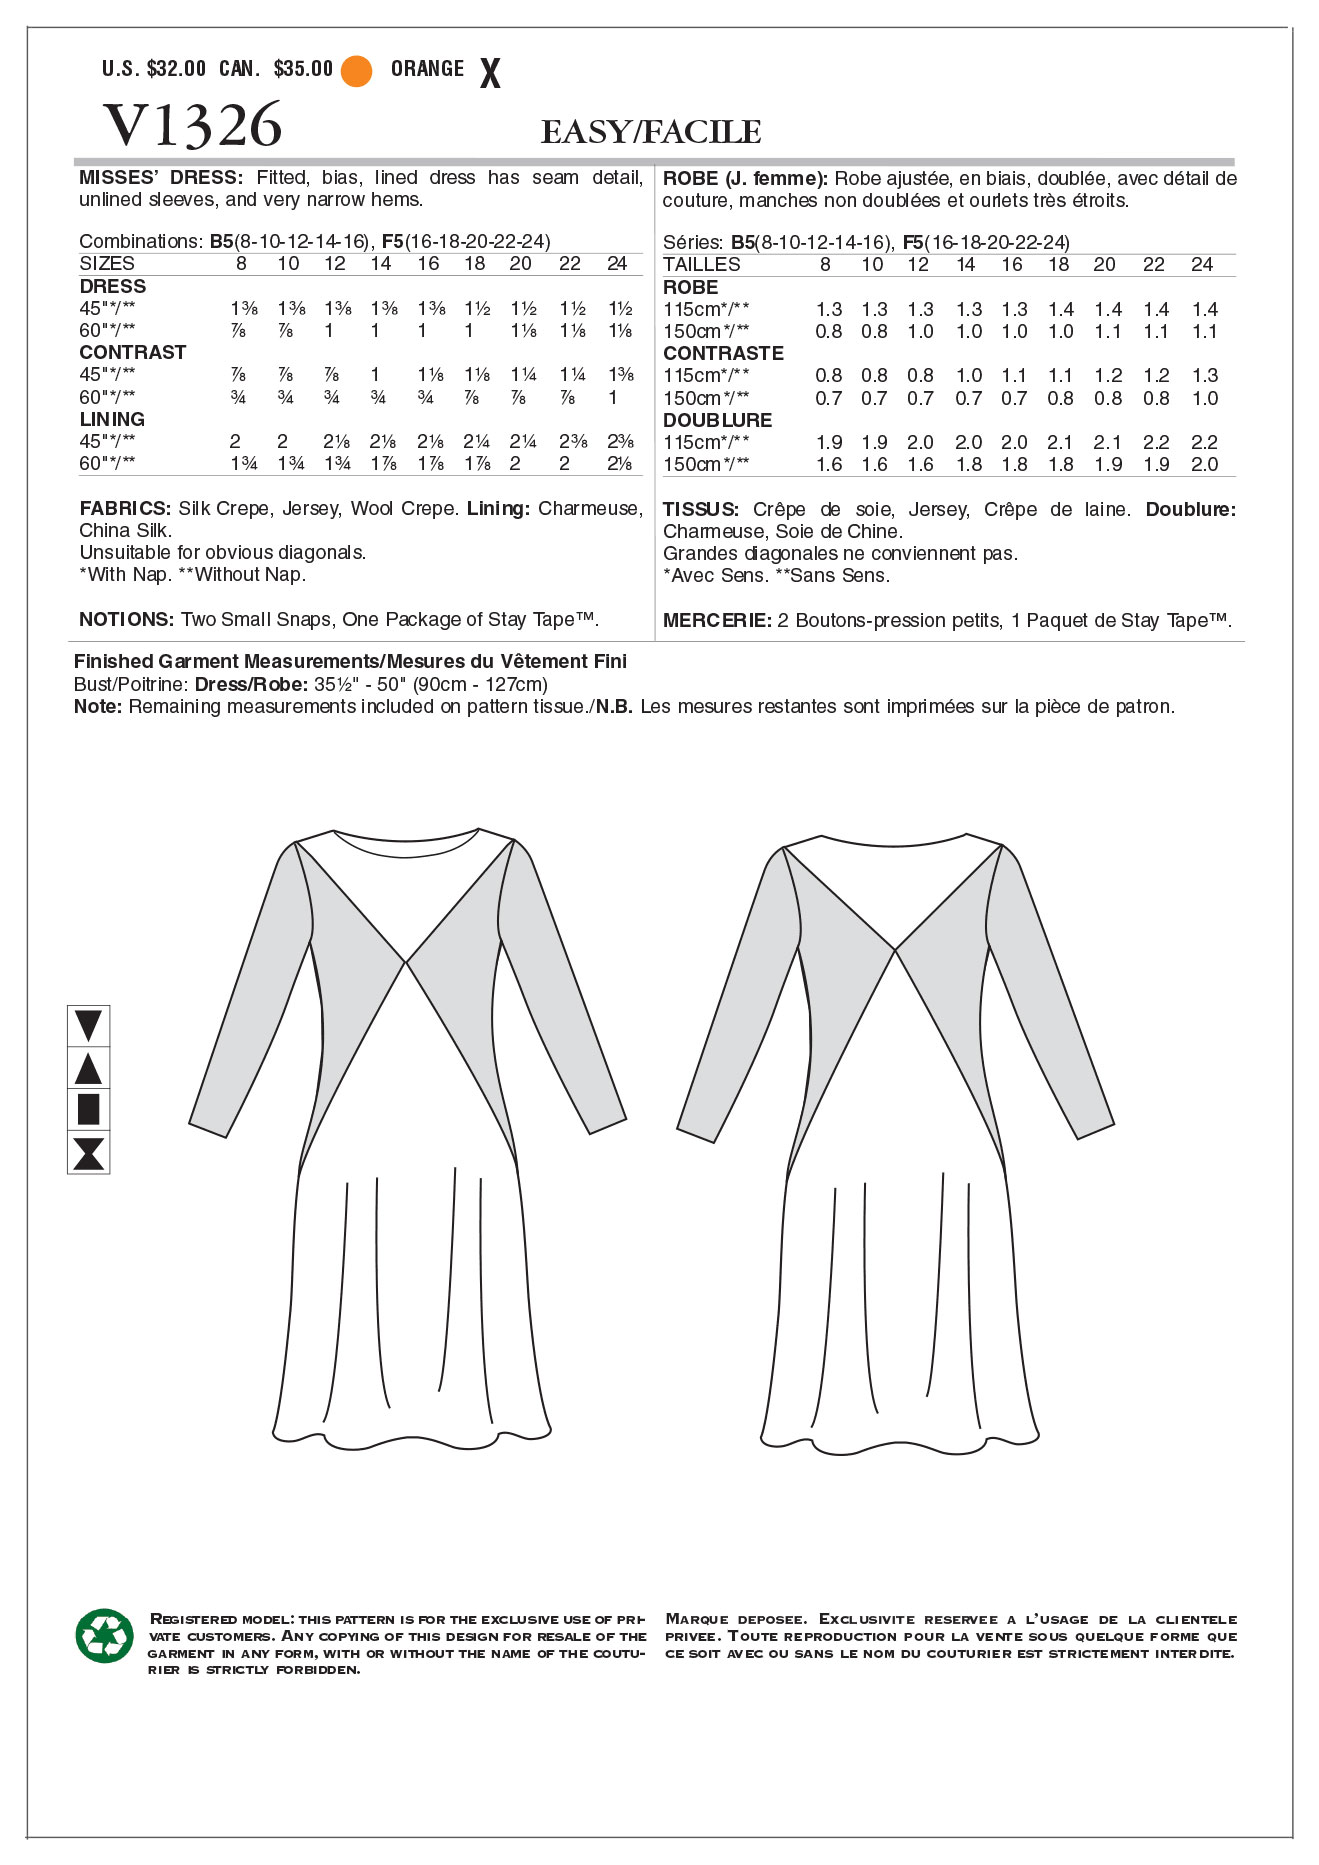 Vogue Patterns Misses Dress-V1326